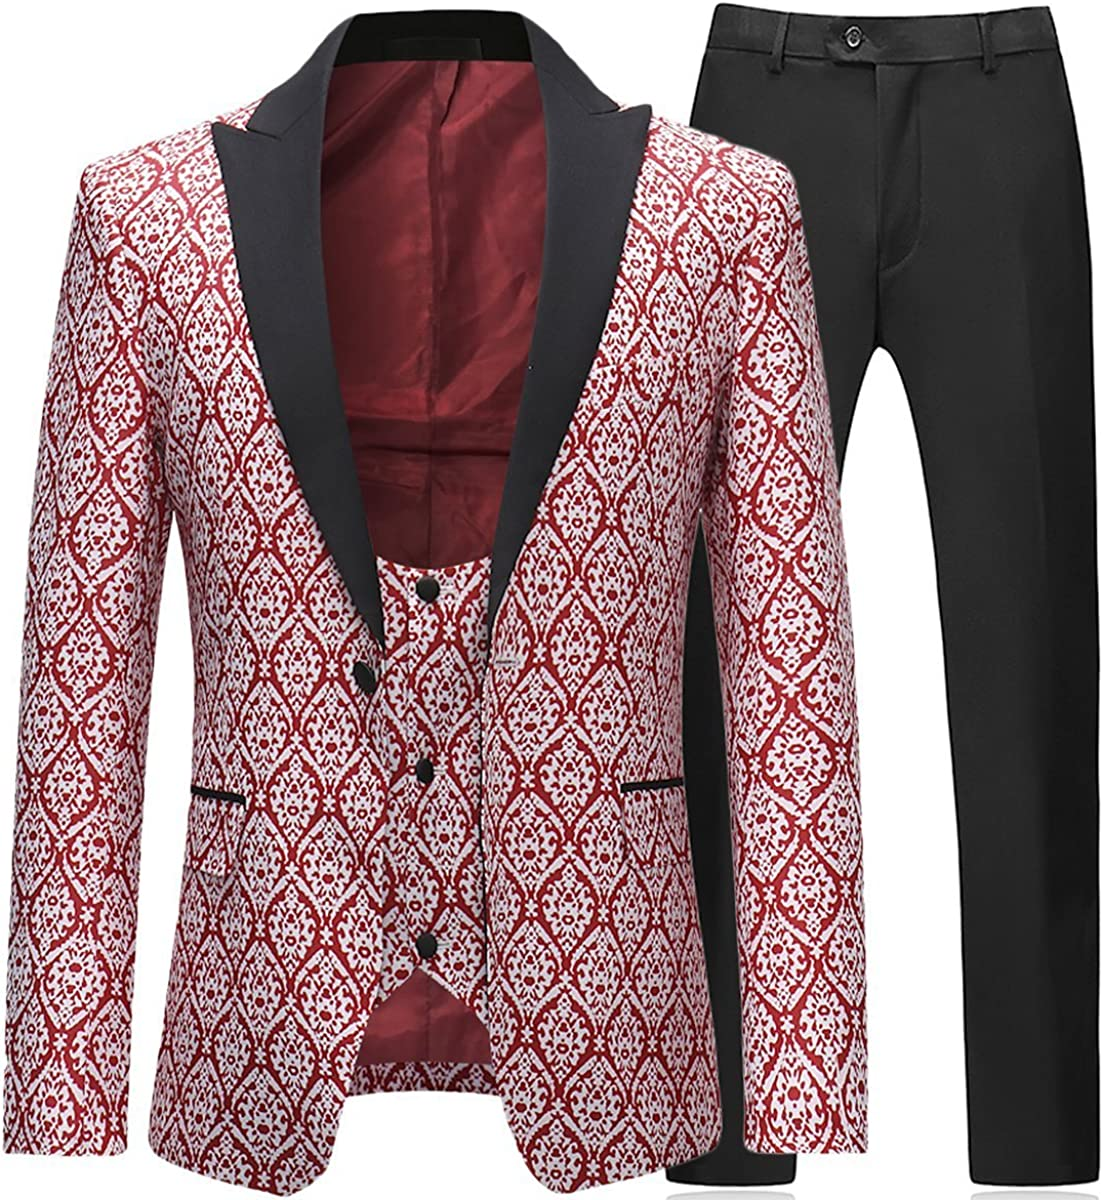 Boyland Mens 3 Piece Tuxedos Slim Fit Floral Vintage Groomsmen Wedding Suit Outfit Jacket